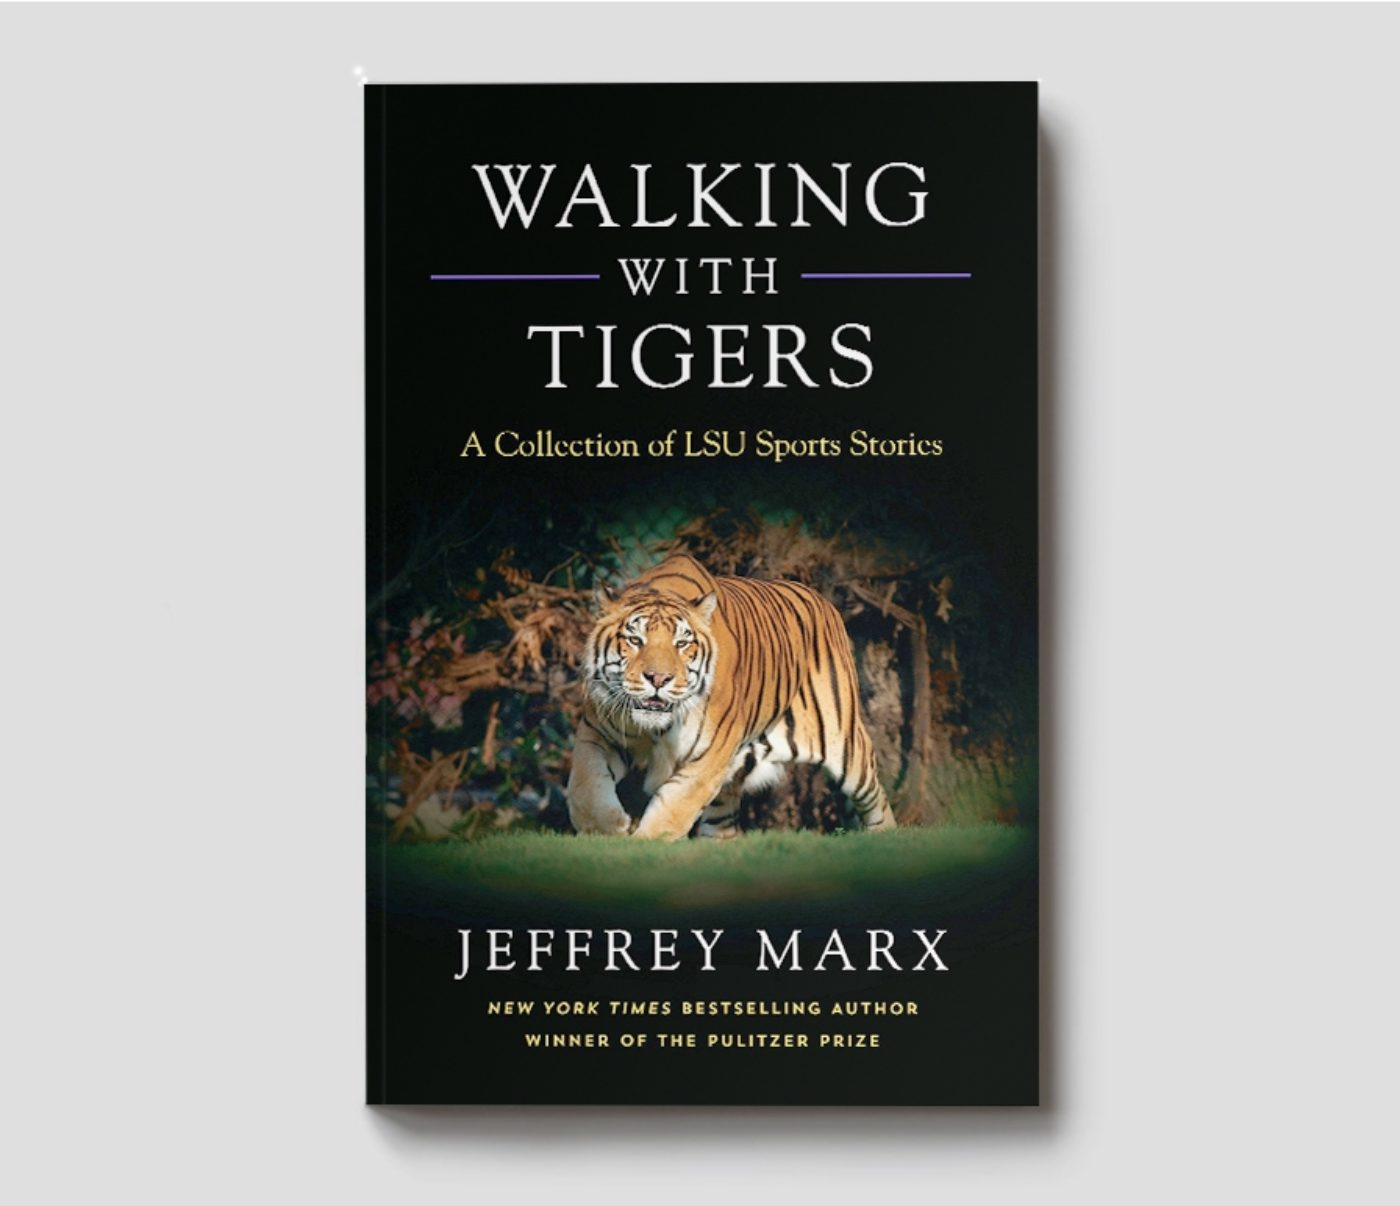 Walking with Tigers